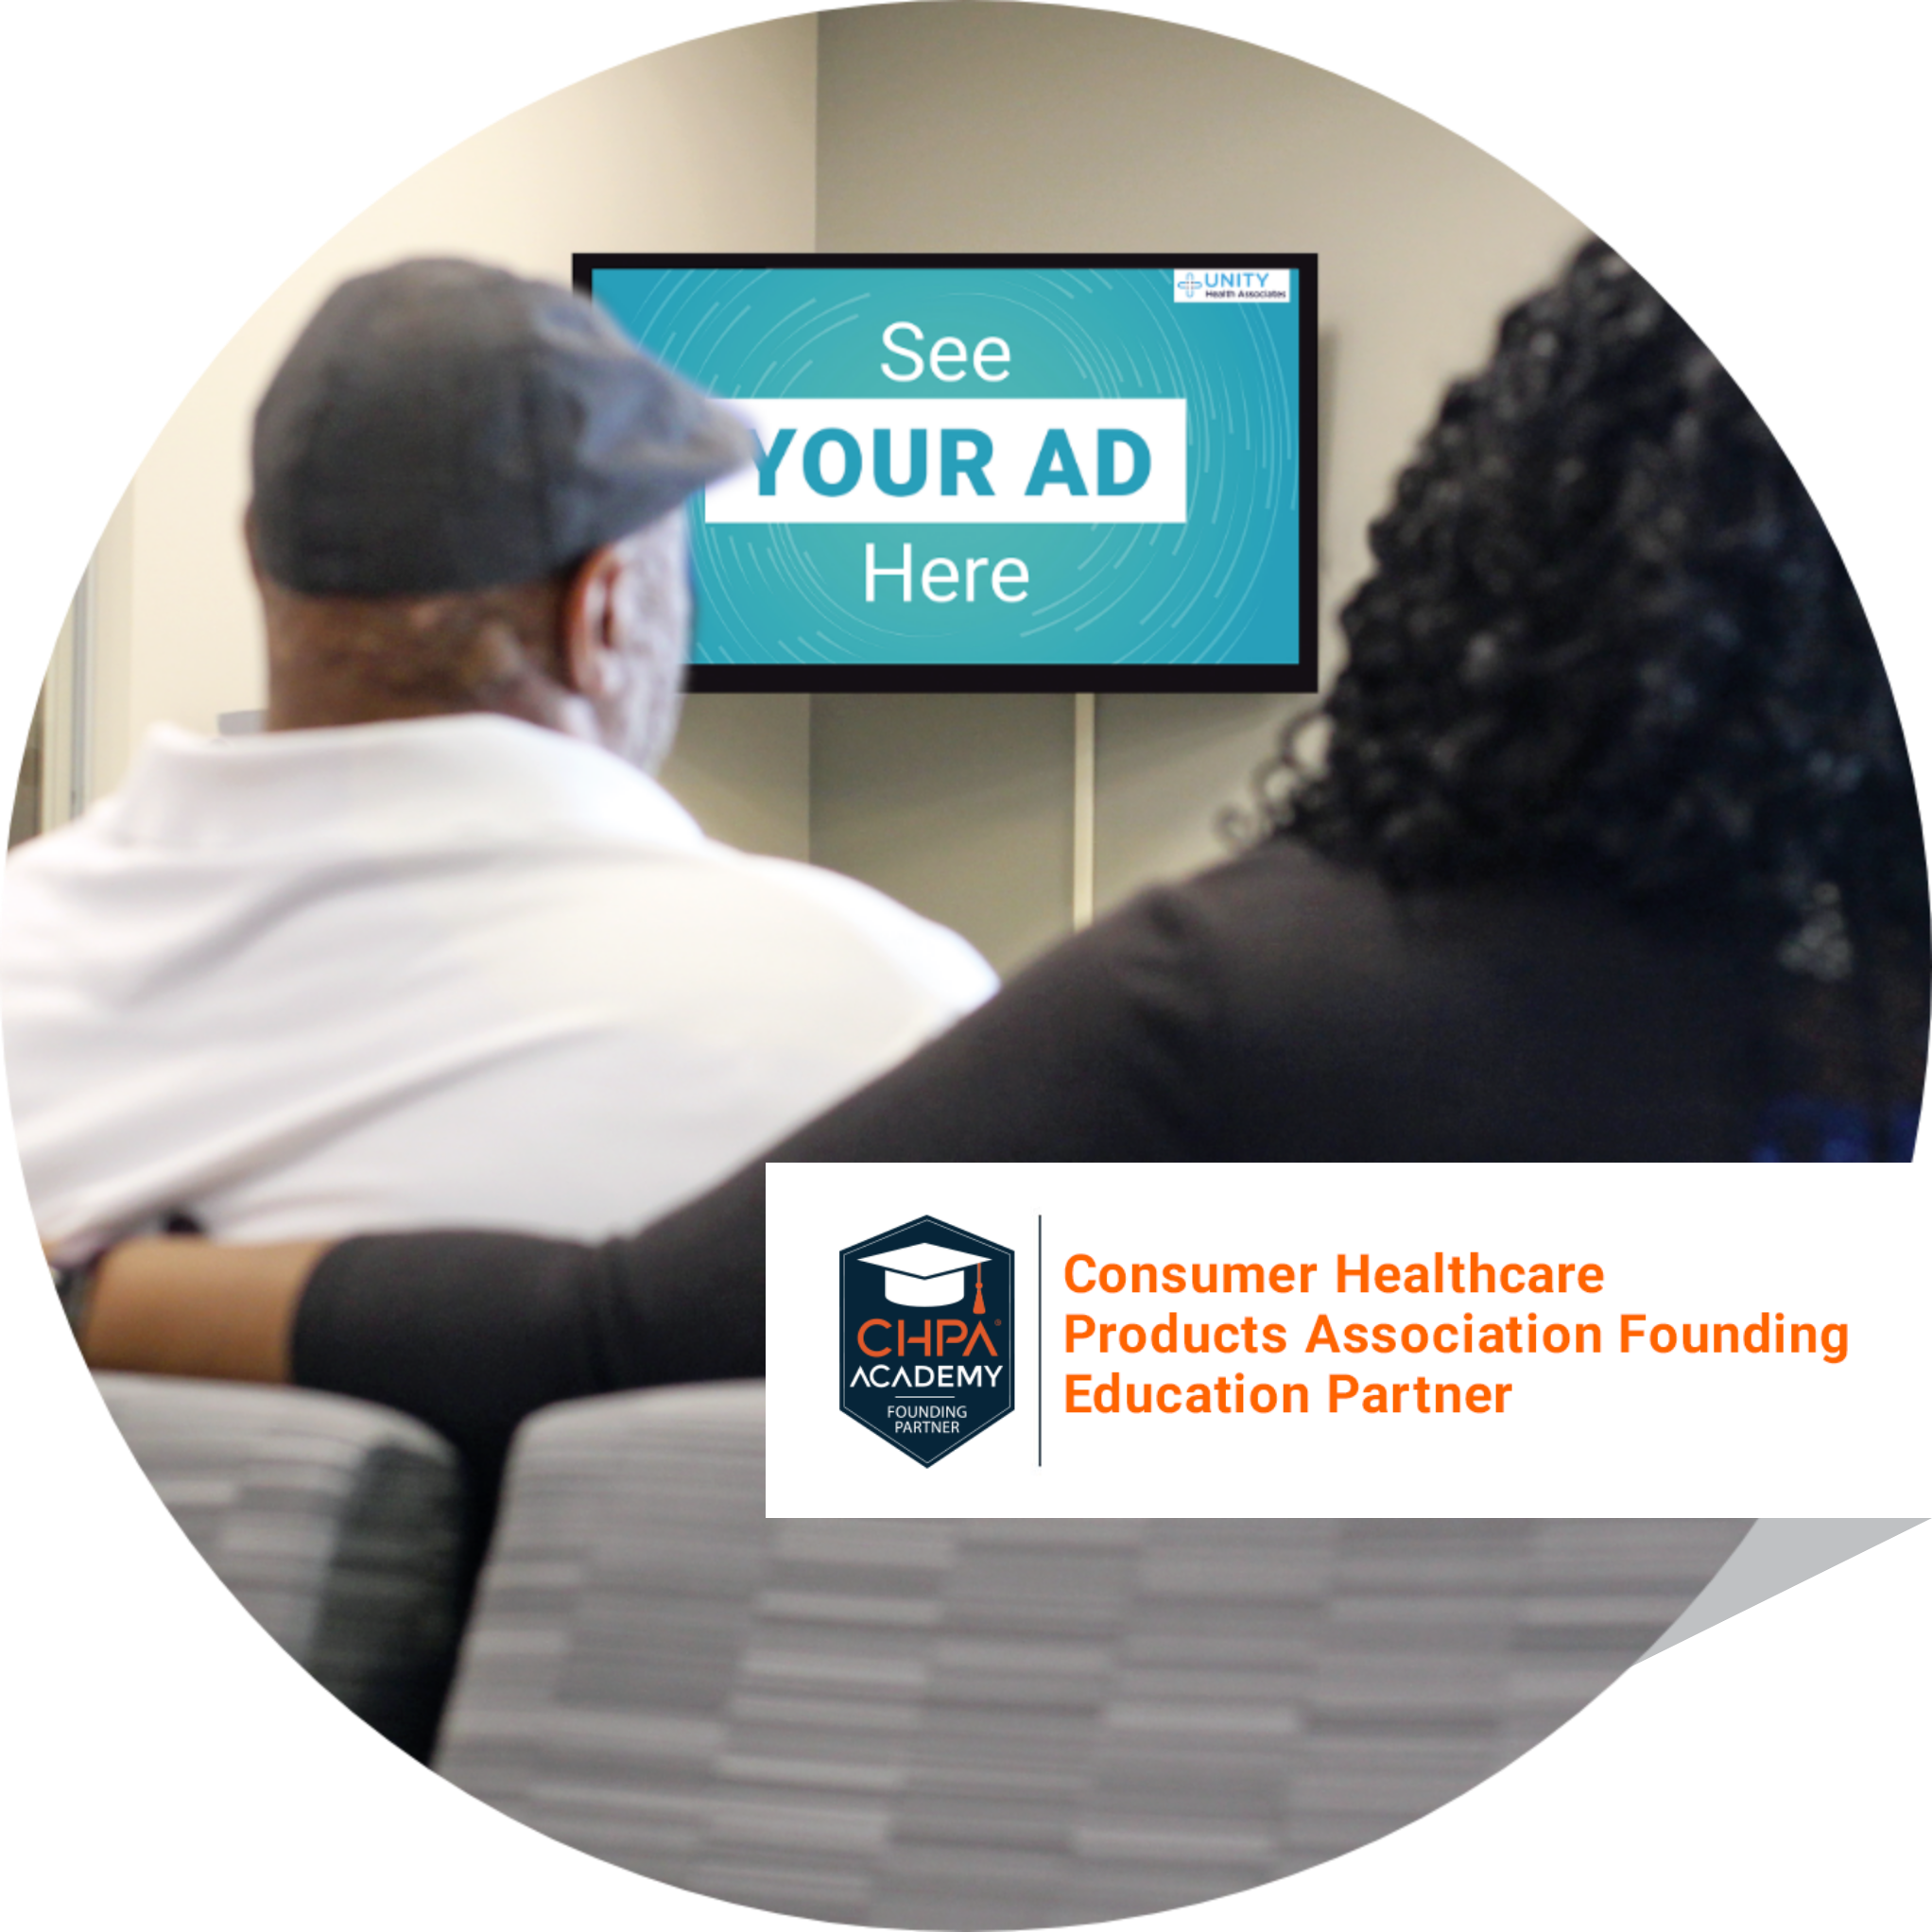 Man and woman sitting in waiting room watching TV screen with sponsor ad on it